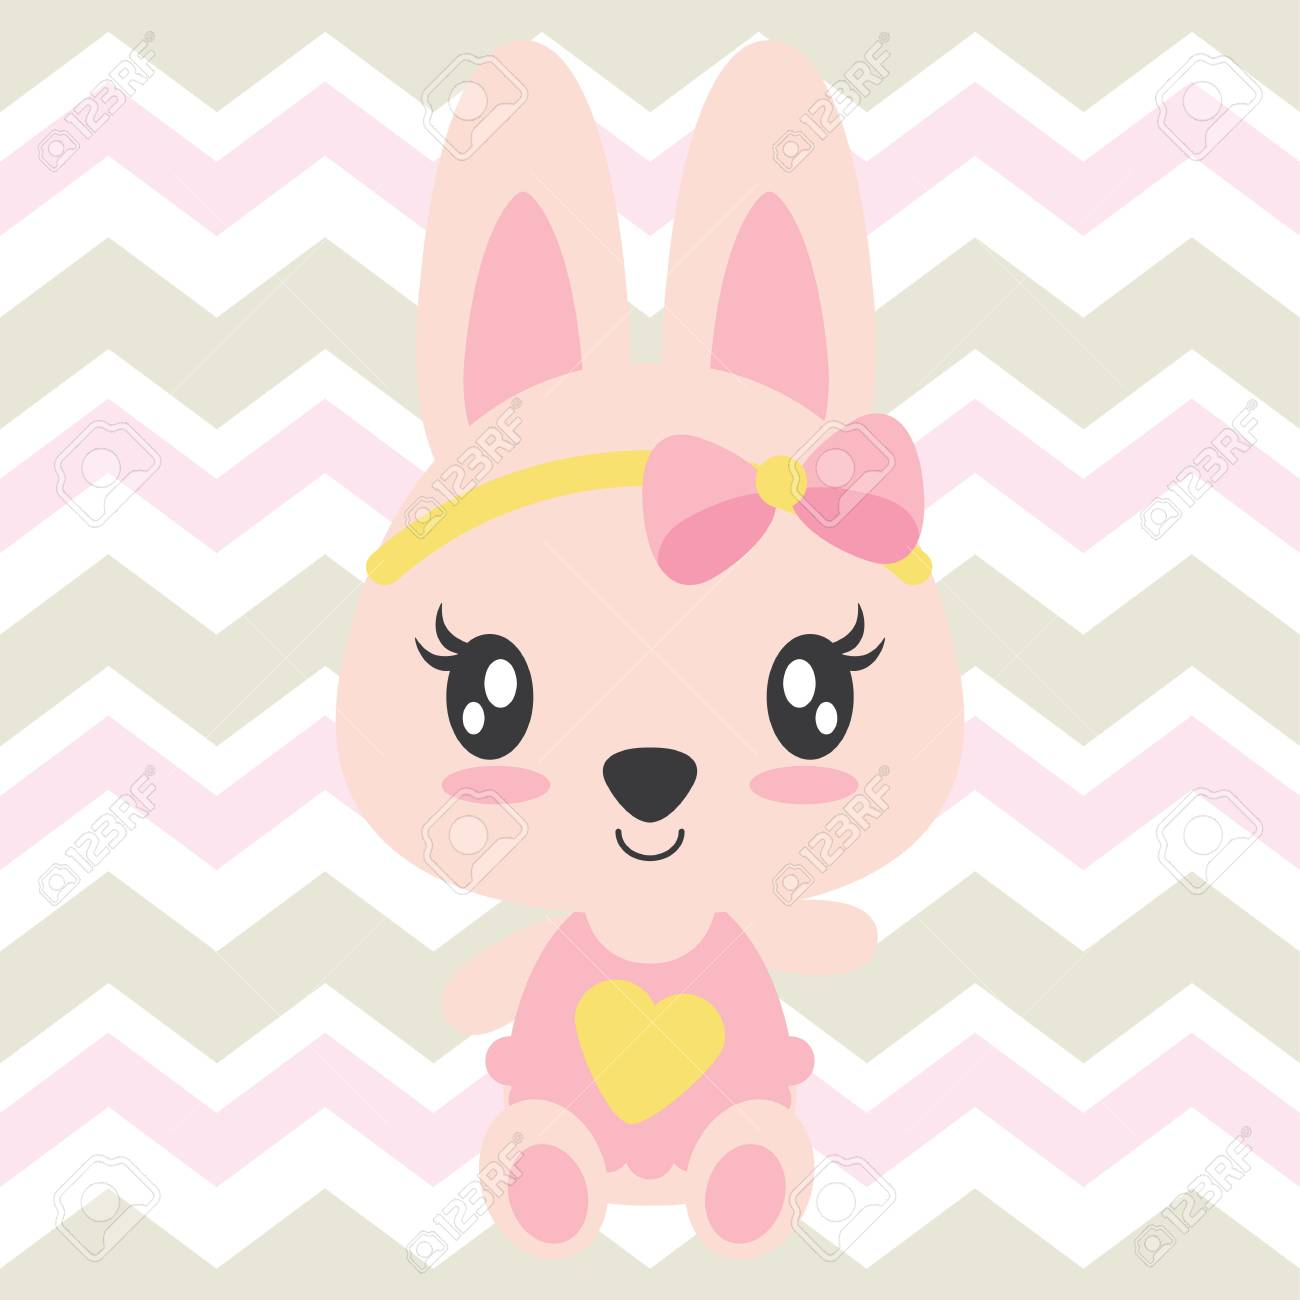 Cute Baby Bunny Sits On Chevron Background Vector Cartoon Illustration Royalty Free Cliparts Vectors And Stock Illustration Image 83248467